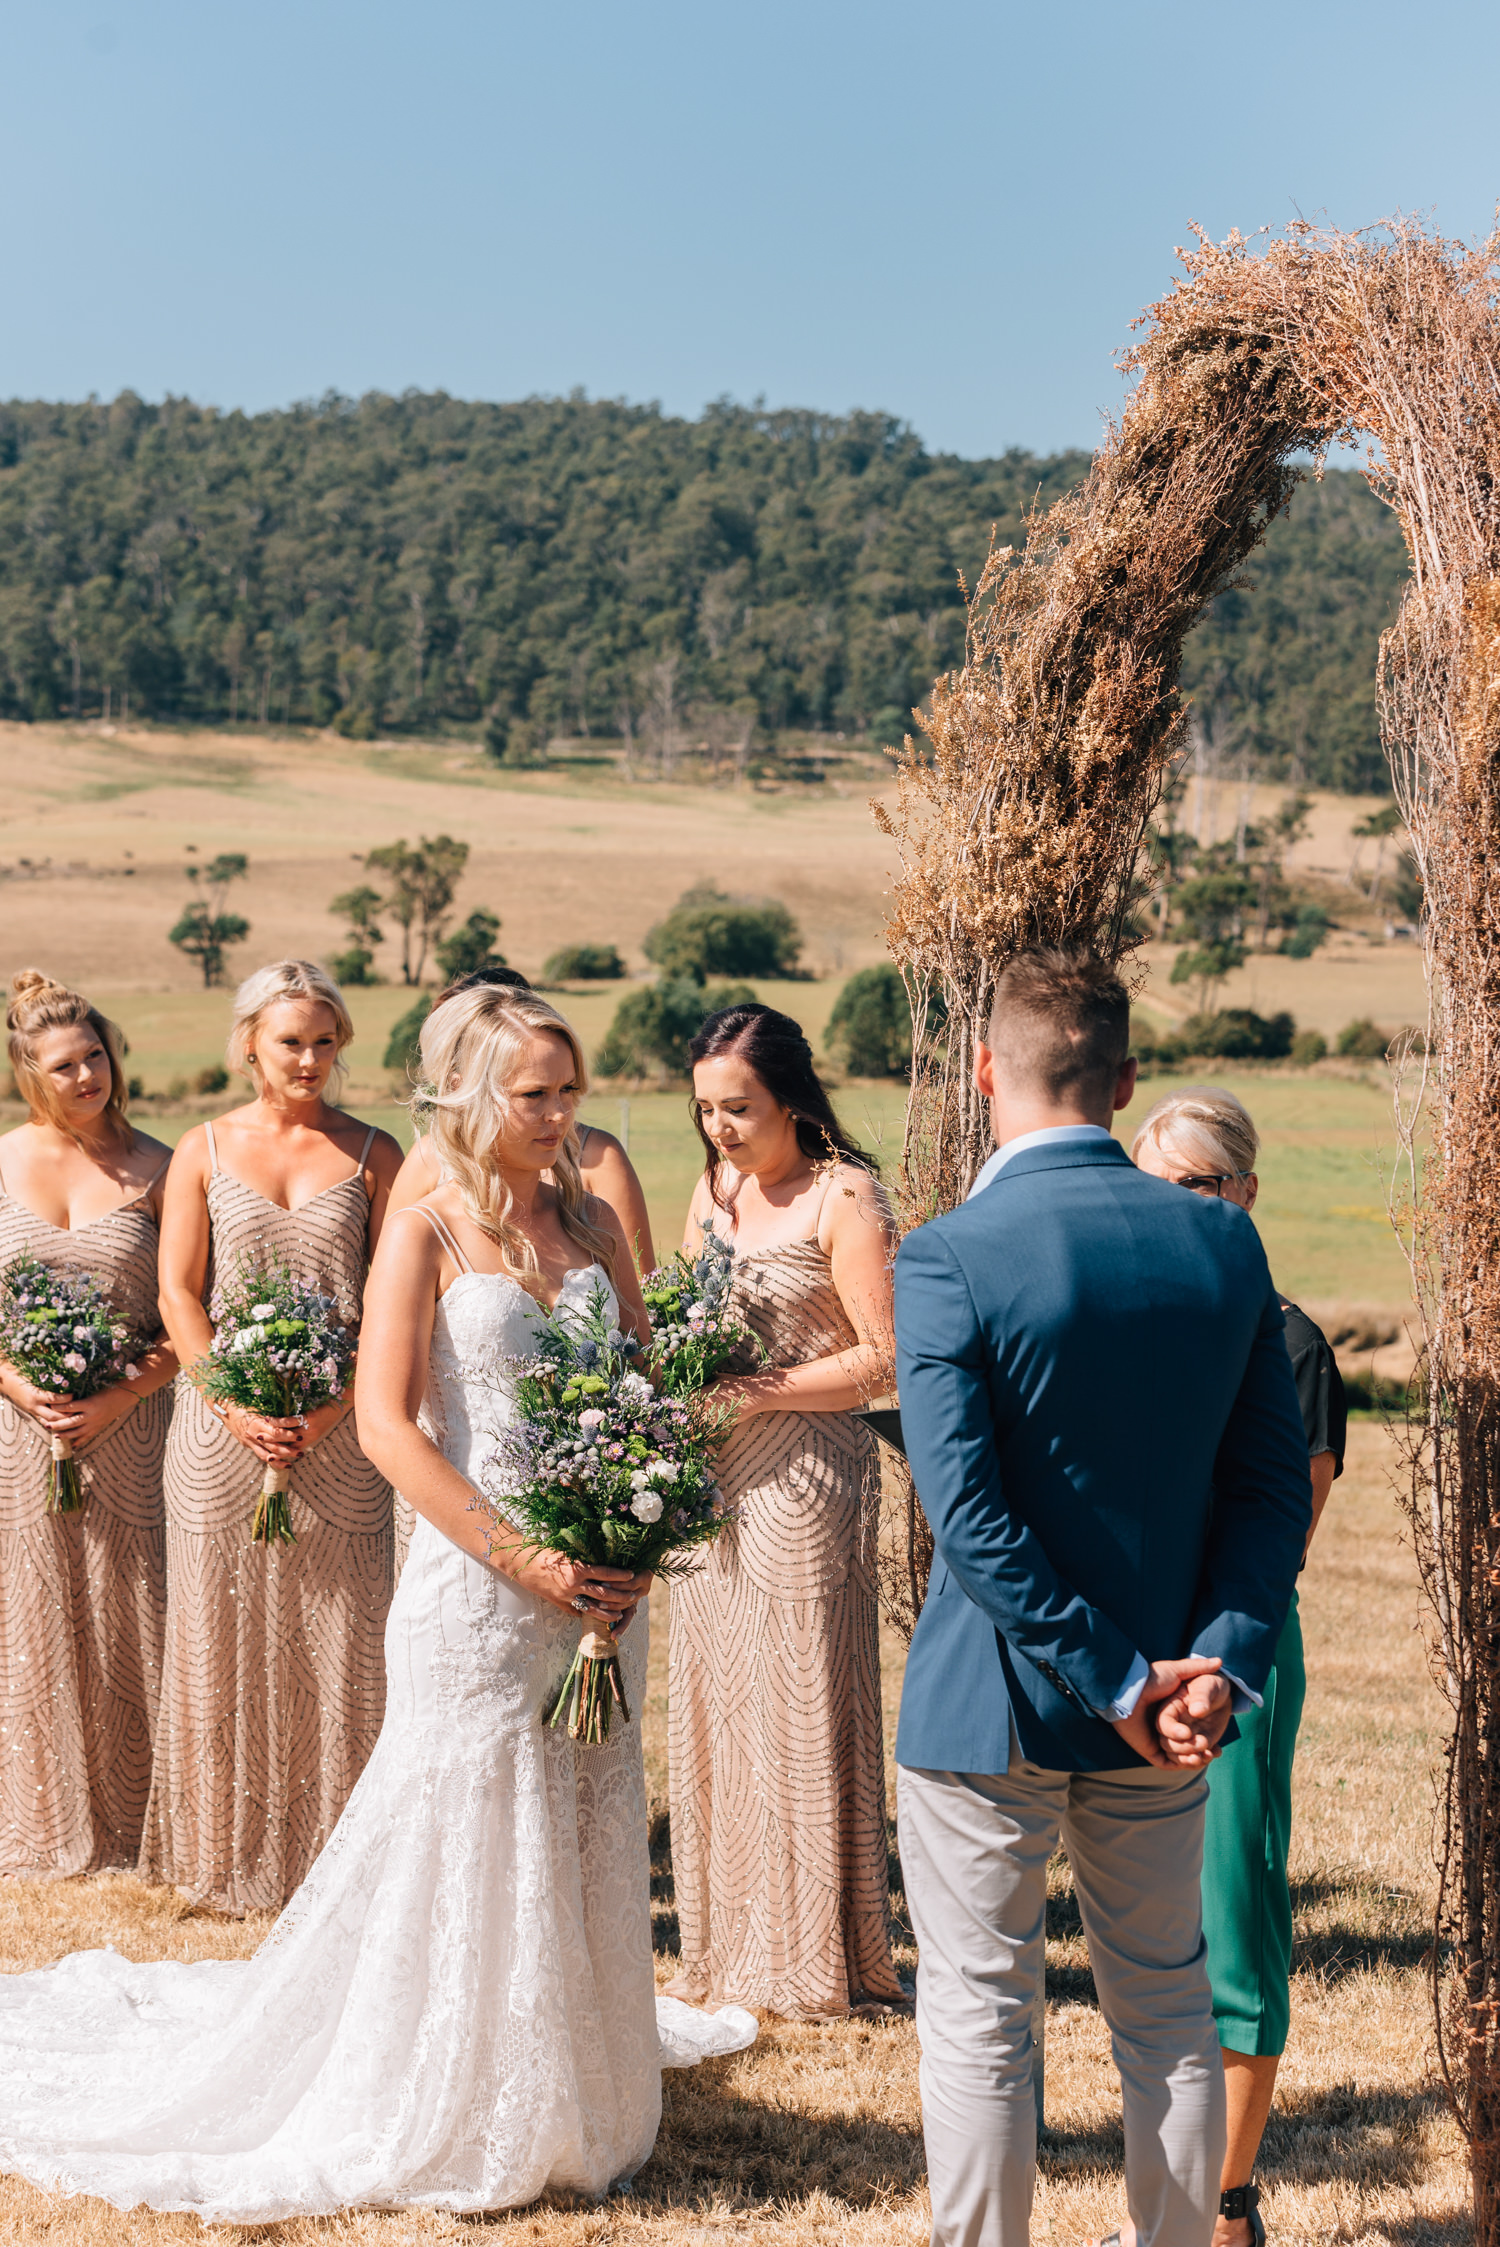 Launceston-Wedding-Photographer-53.jpg